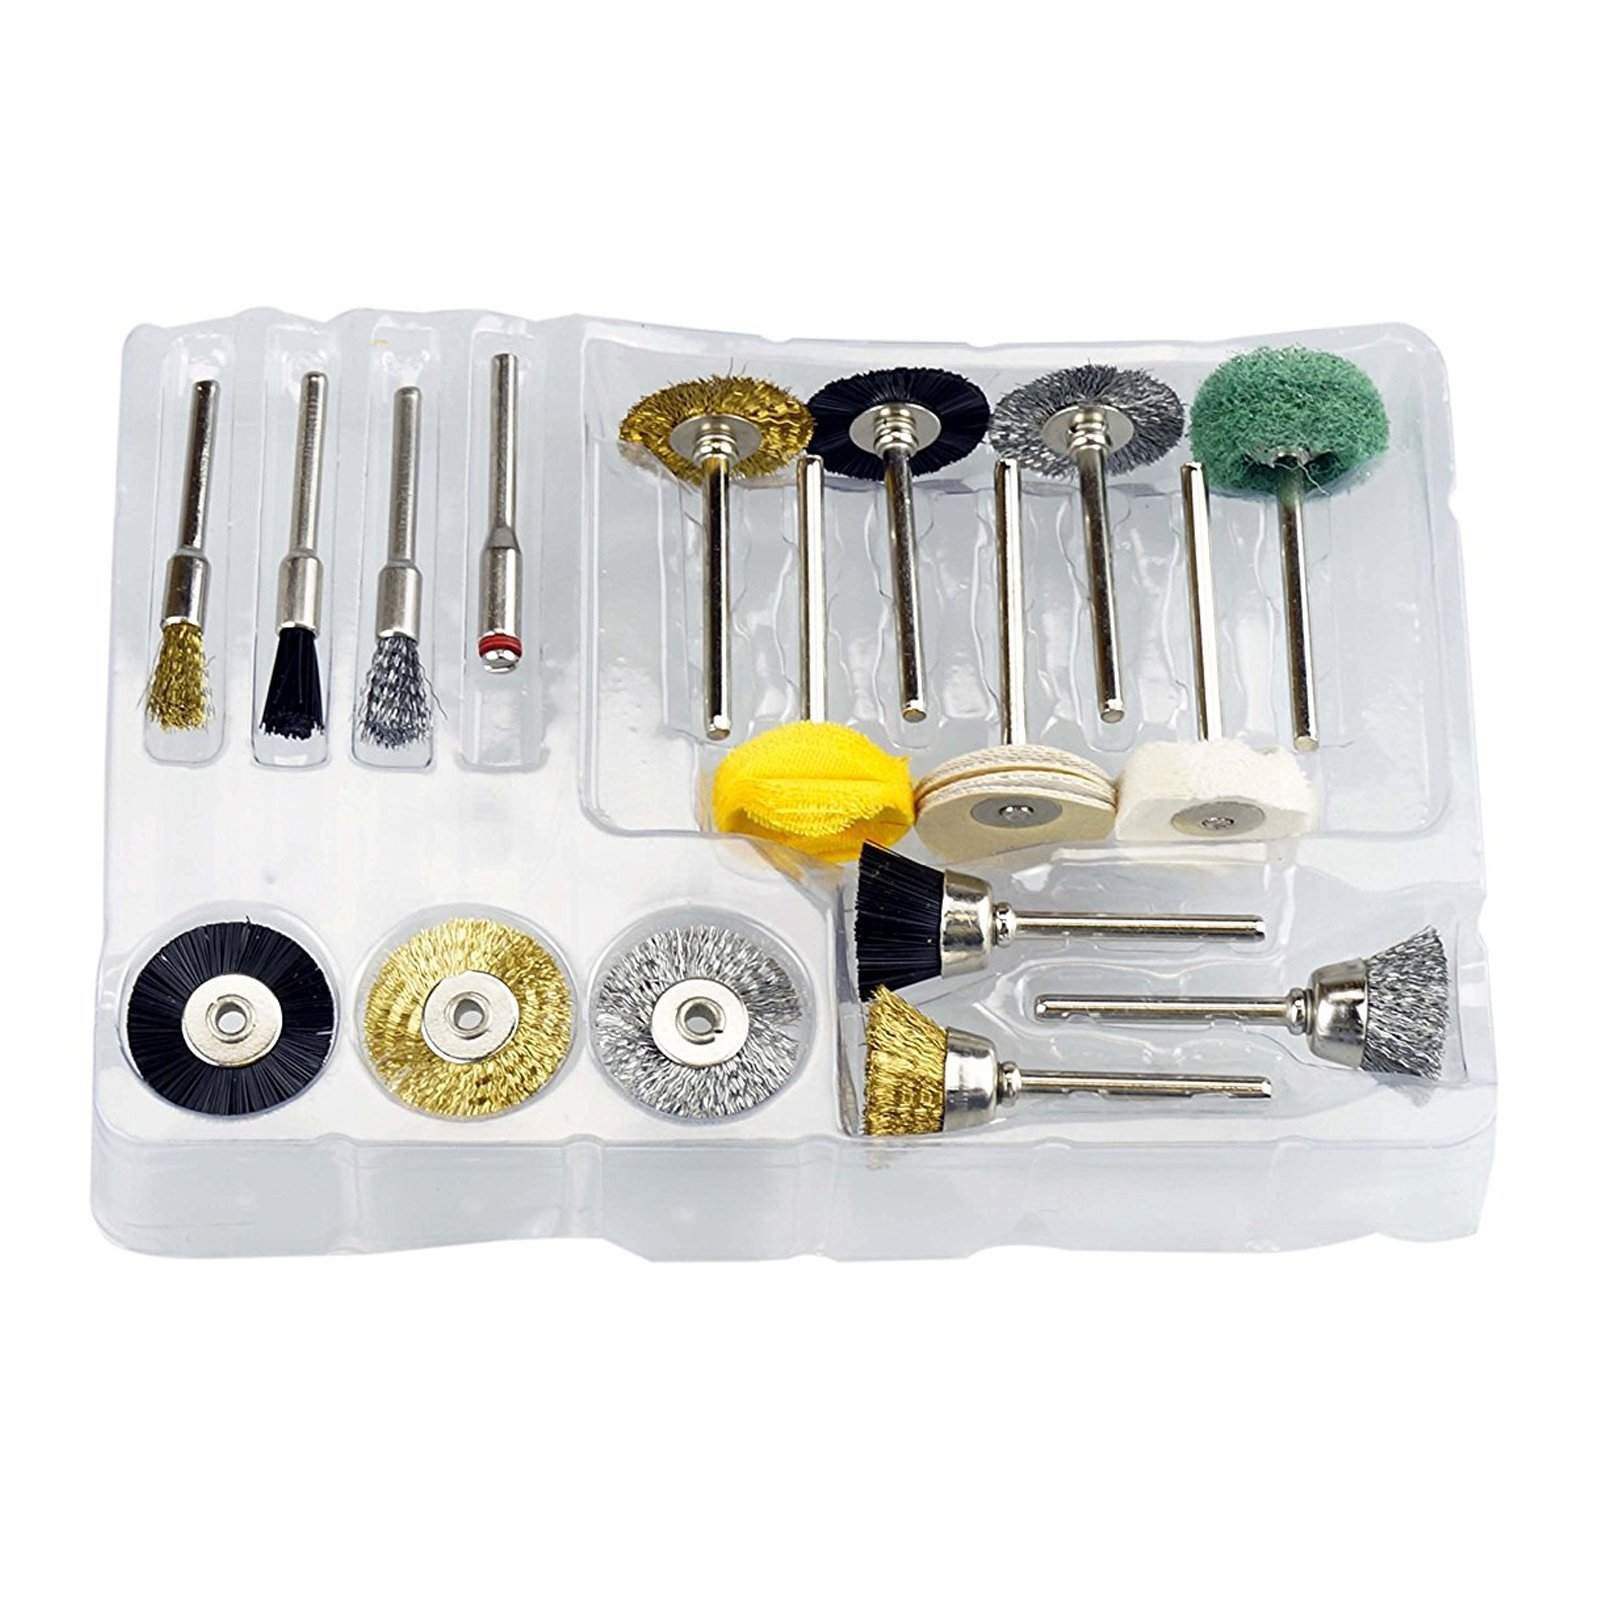 17 piece Rotary Tool Cleaning Brush Kit Assorted Sizes and Styles